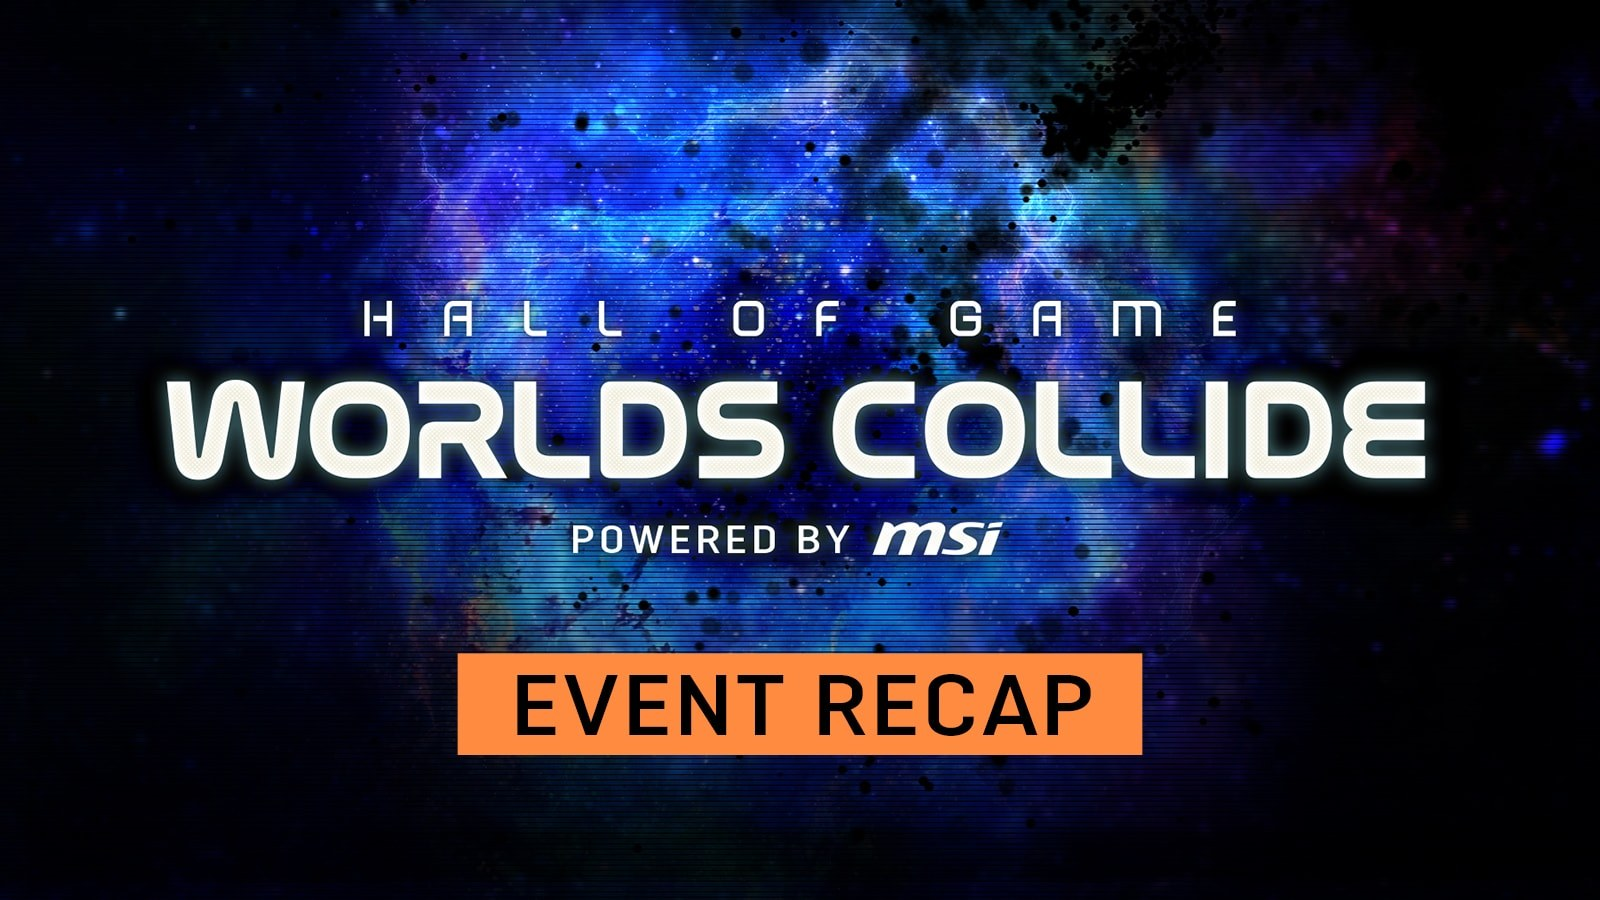 Hall of Game: Worlds Collide Brings Together Full Sail's Gaming Community - Hero image